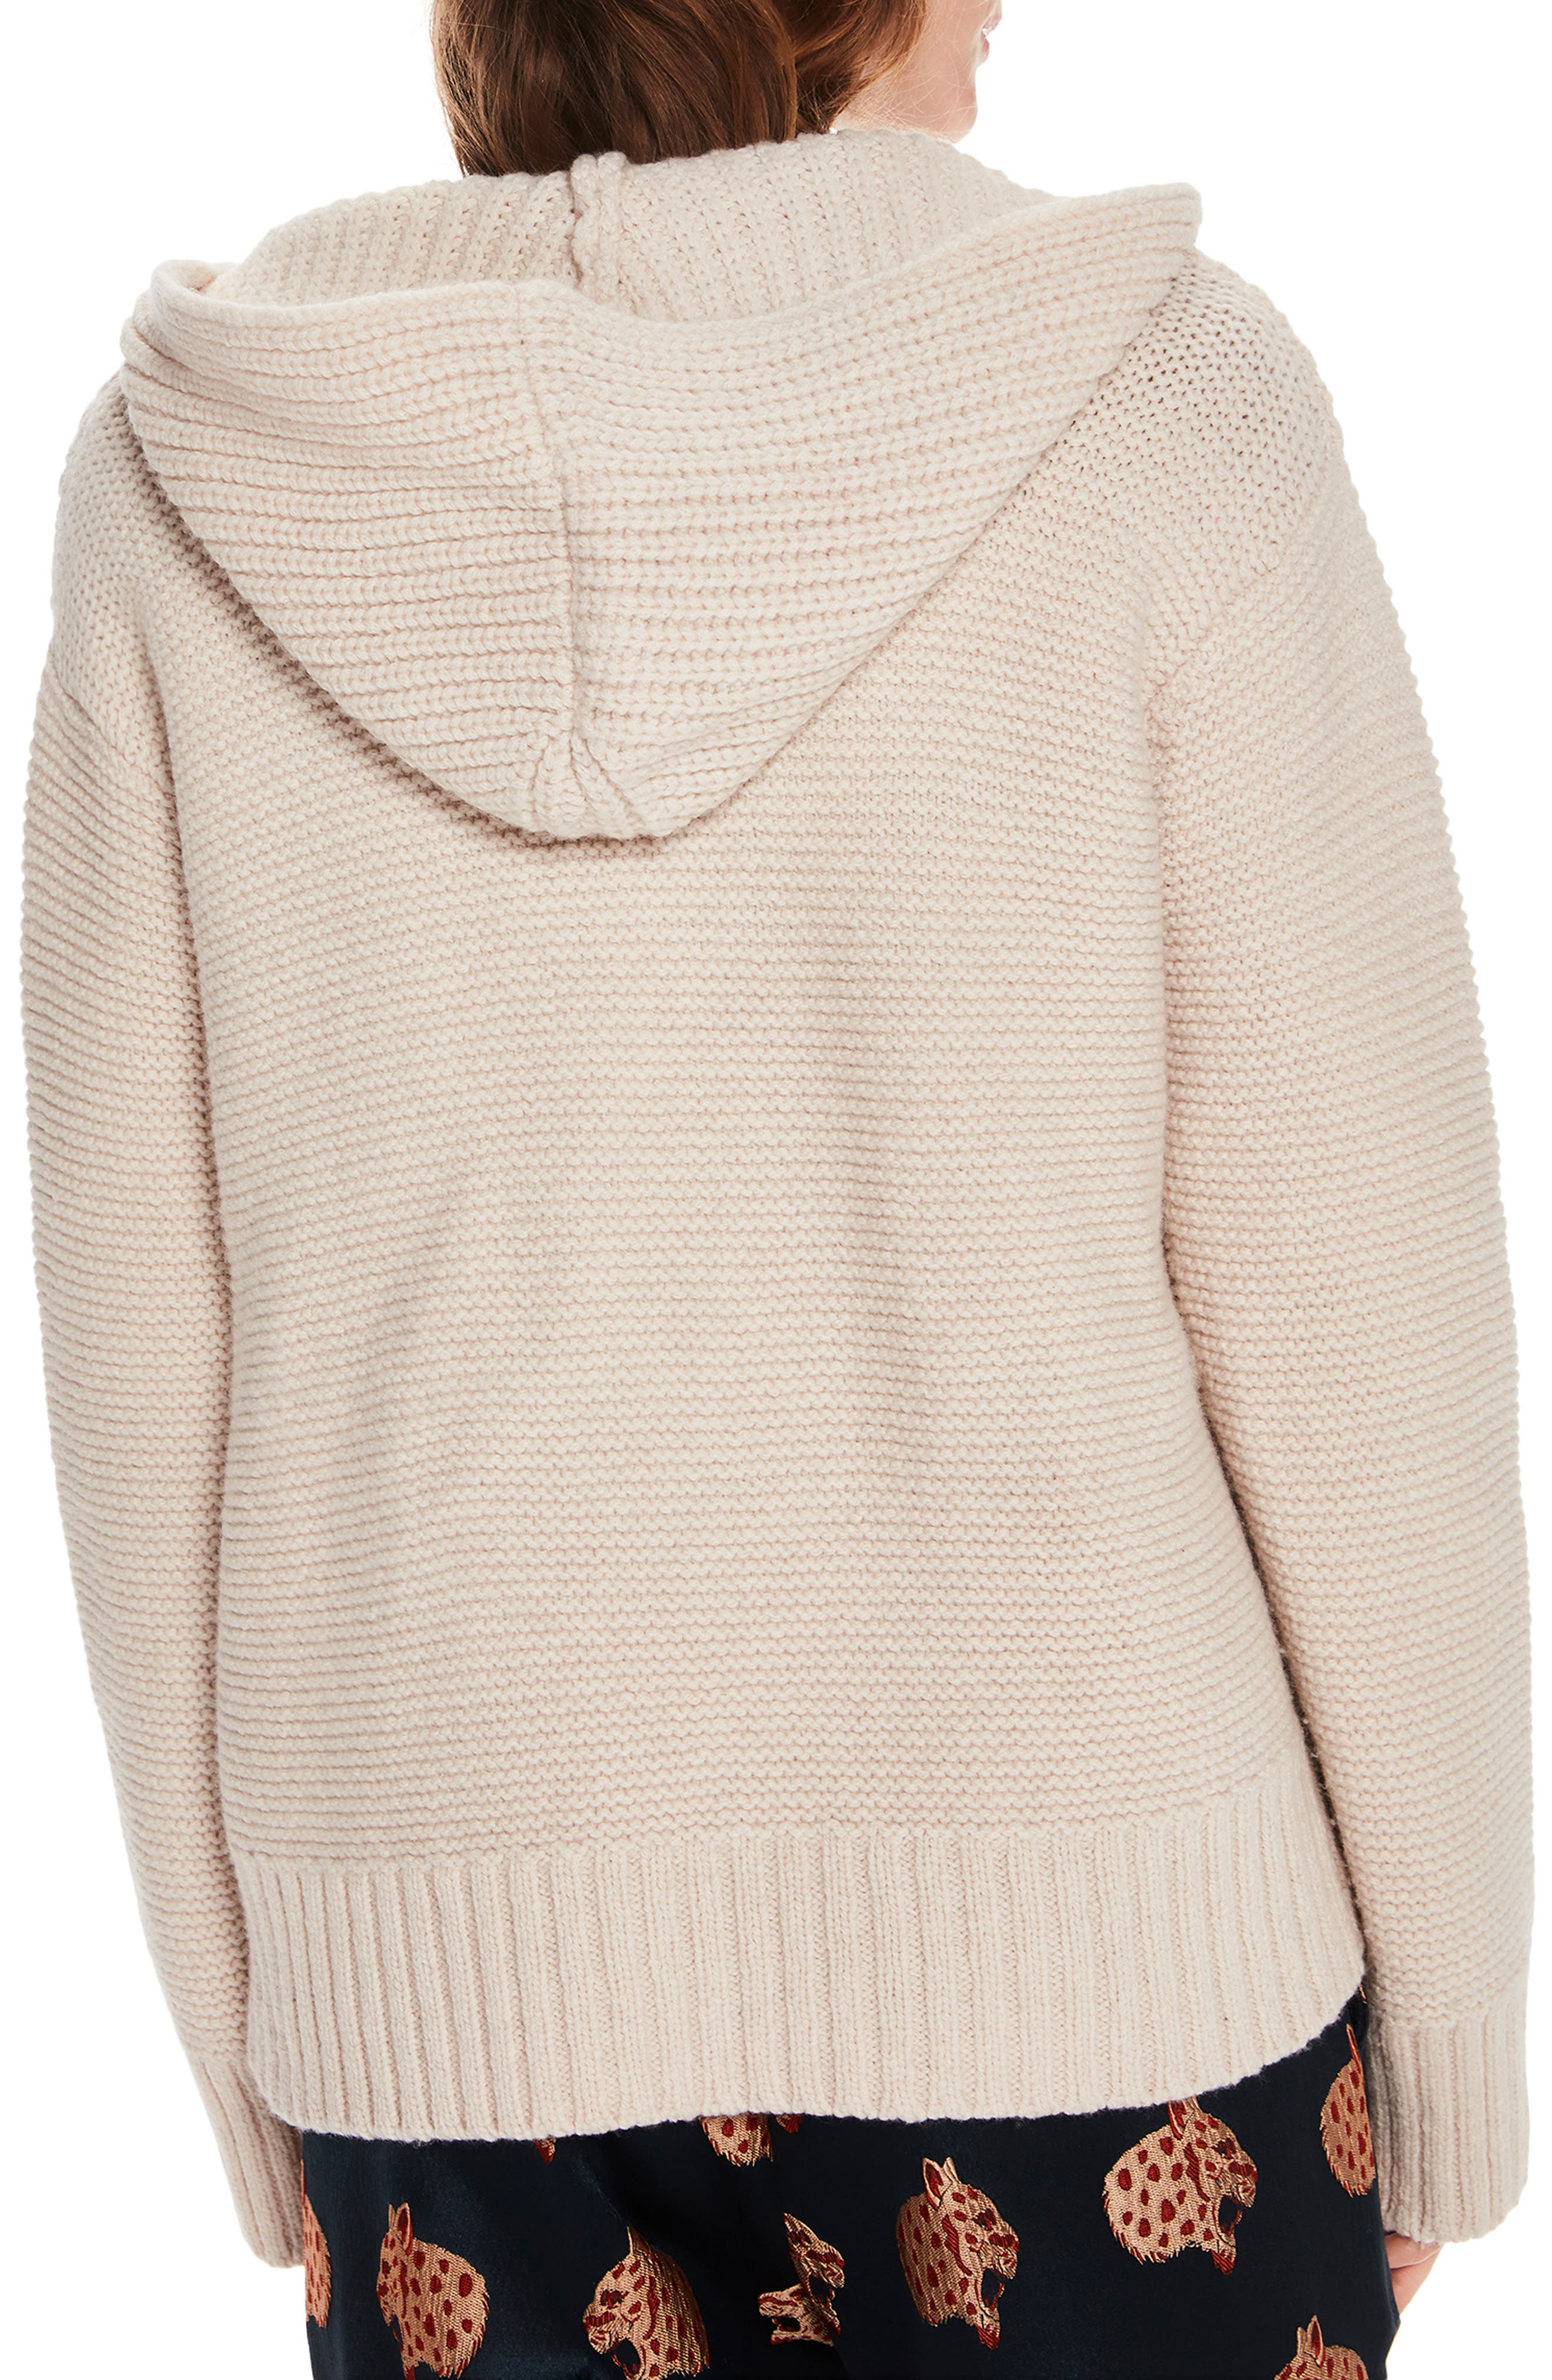 Lace-Up Knit Hooded Sweater,                             Alternate thumbnail 2, color,                             CREAM